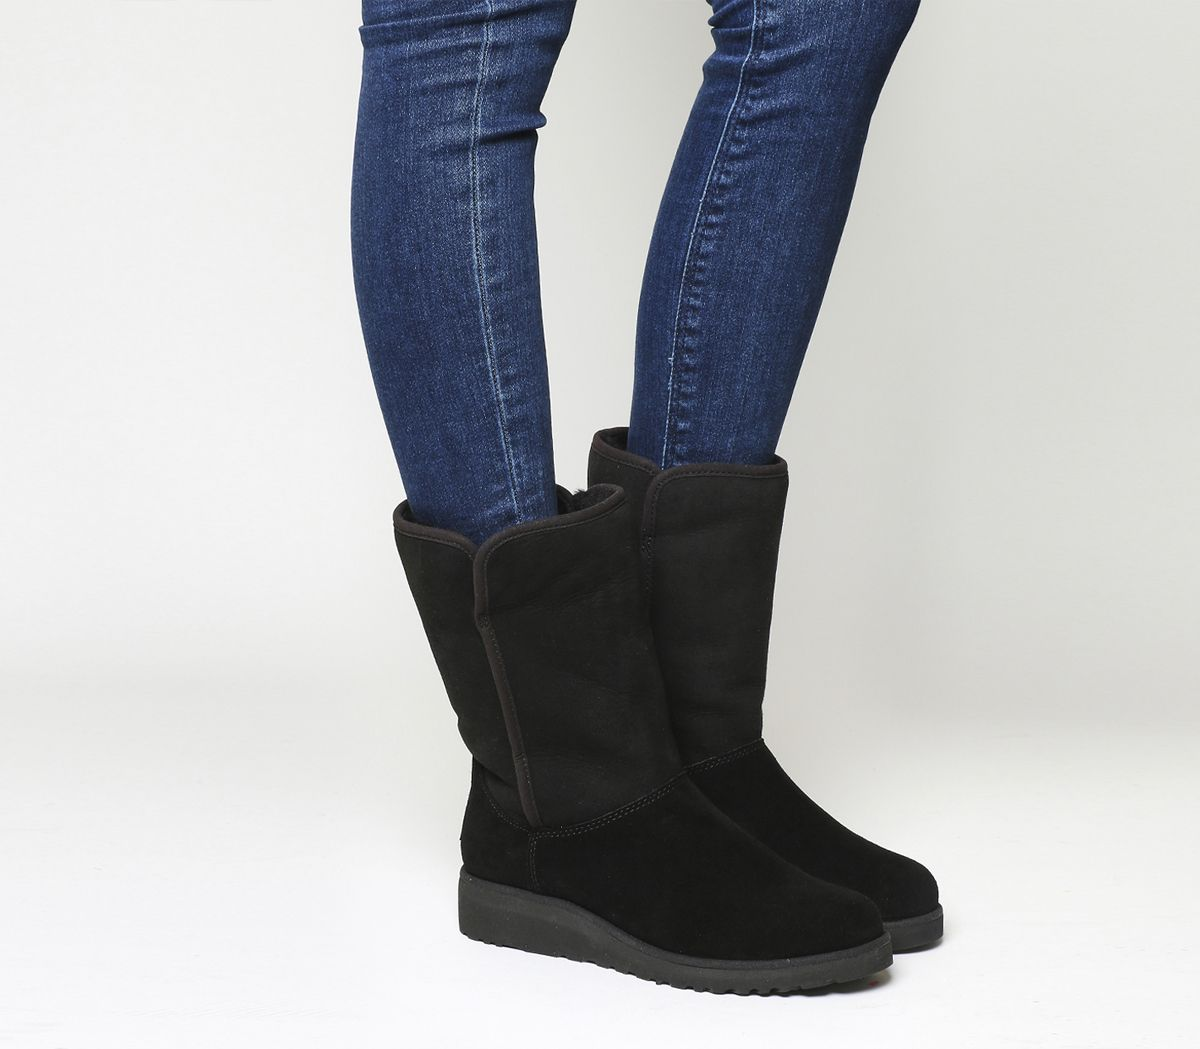 8a560e4fbf4c9 UGG Classic Amie Slim Short Black Suede - Ankle Boots